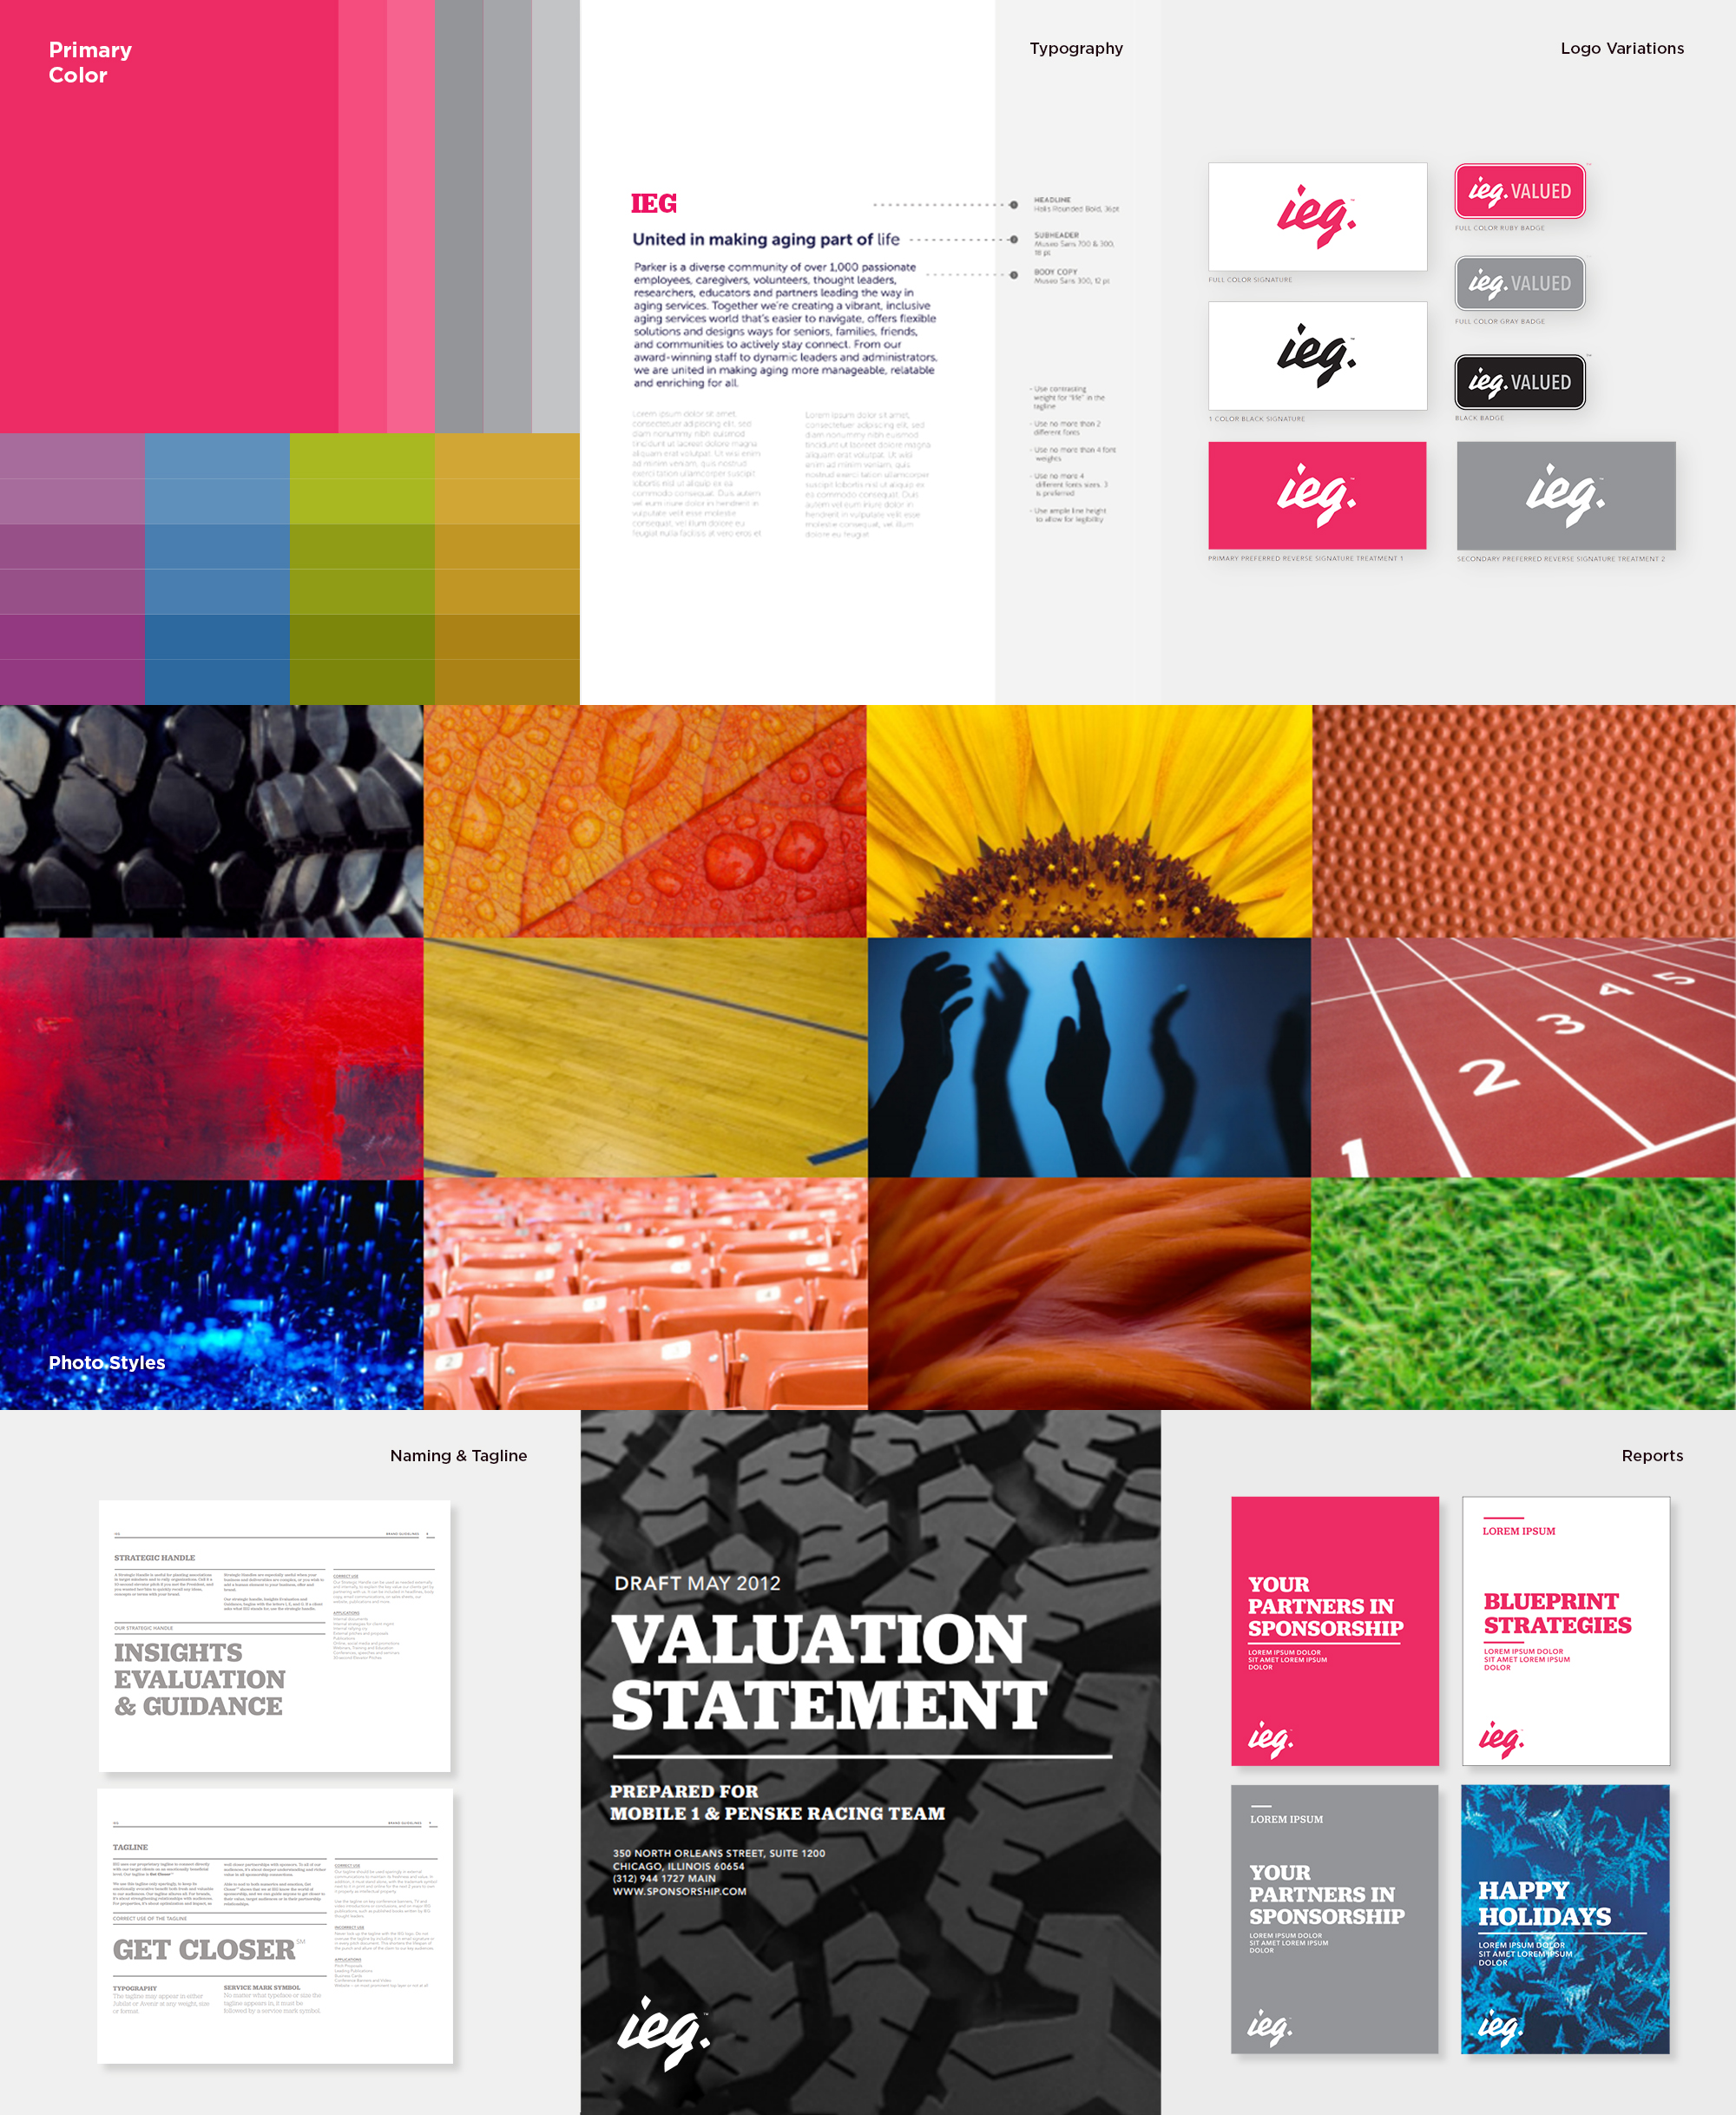 IEG Brand Guidelines